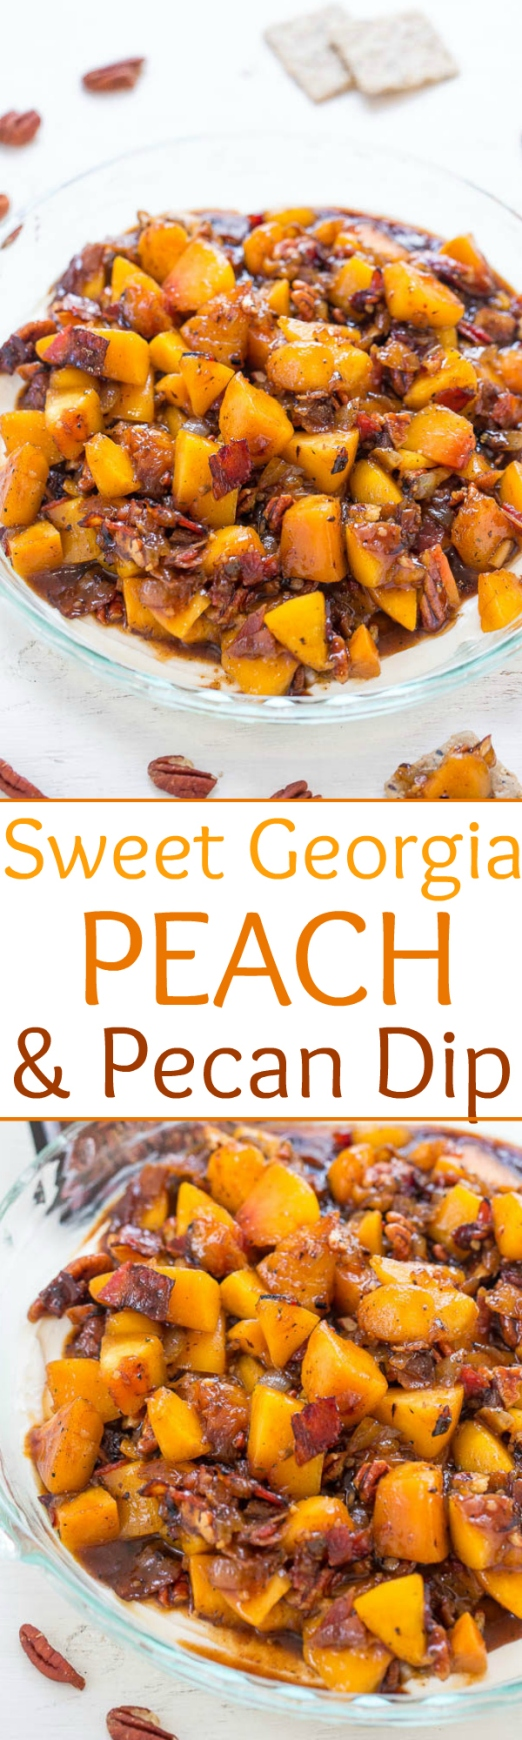 sweet georgia peach and pecan dip national eat a peach day